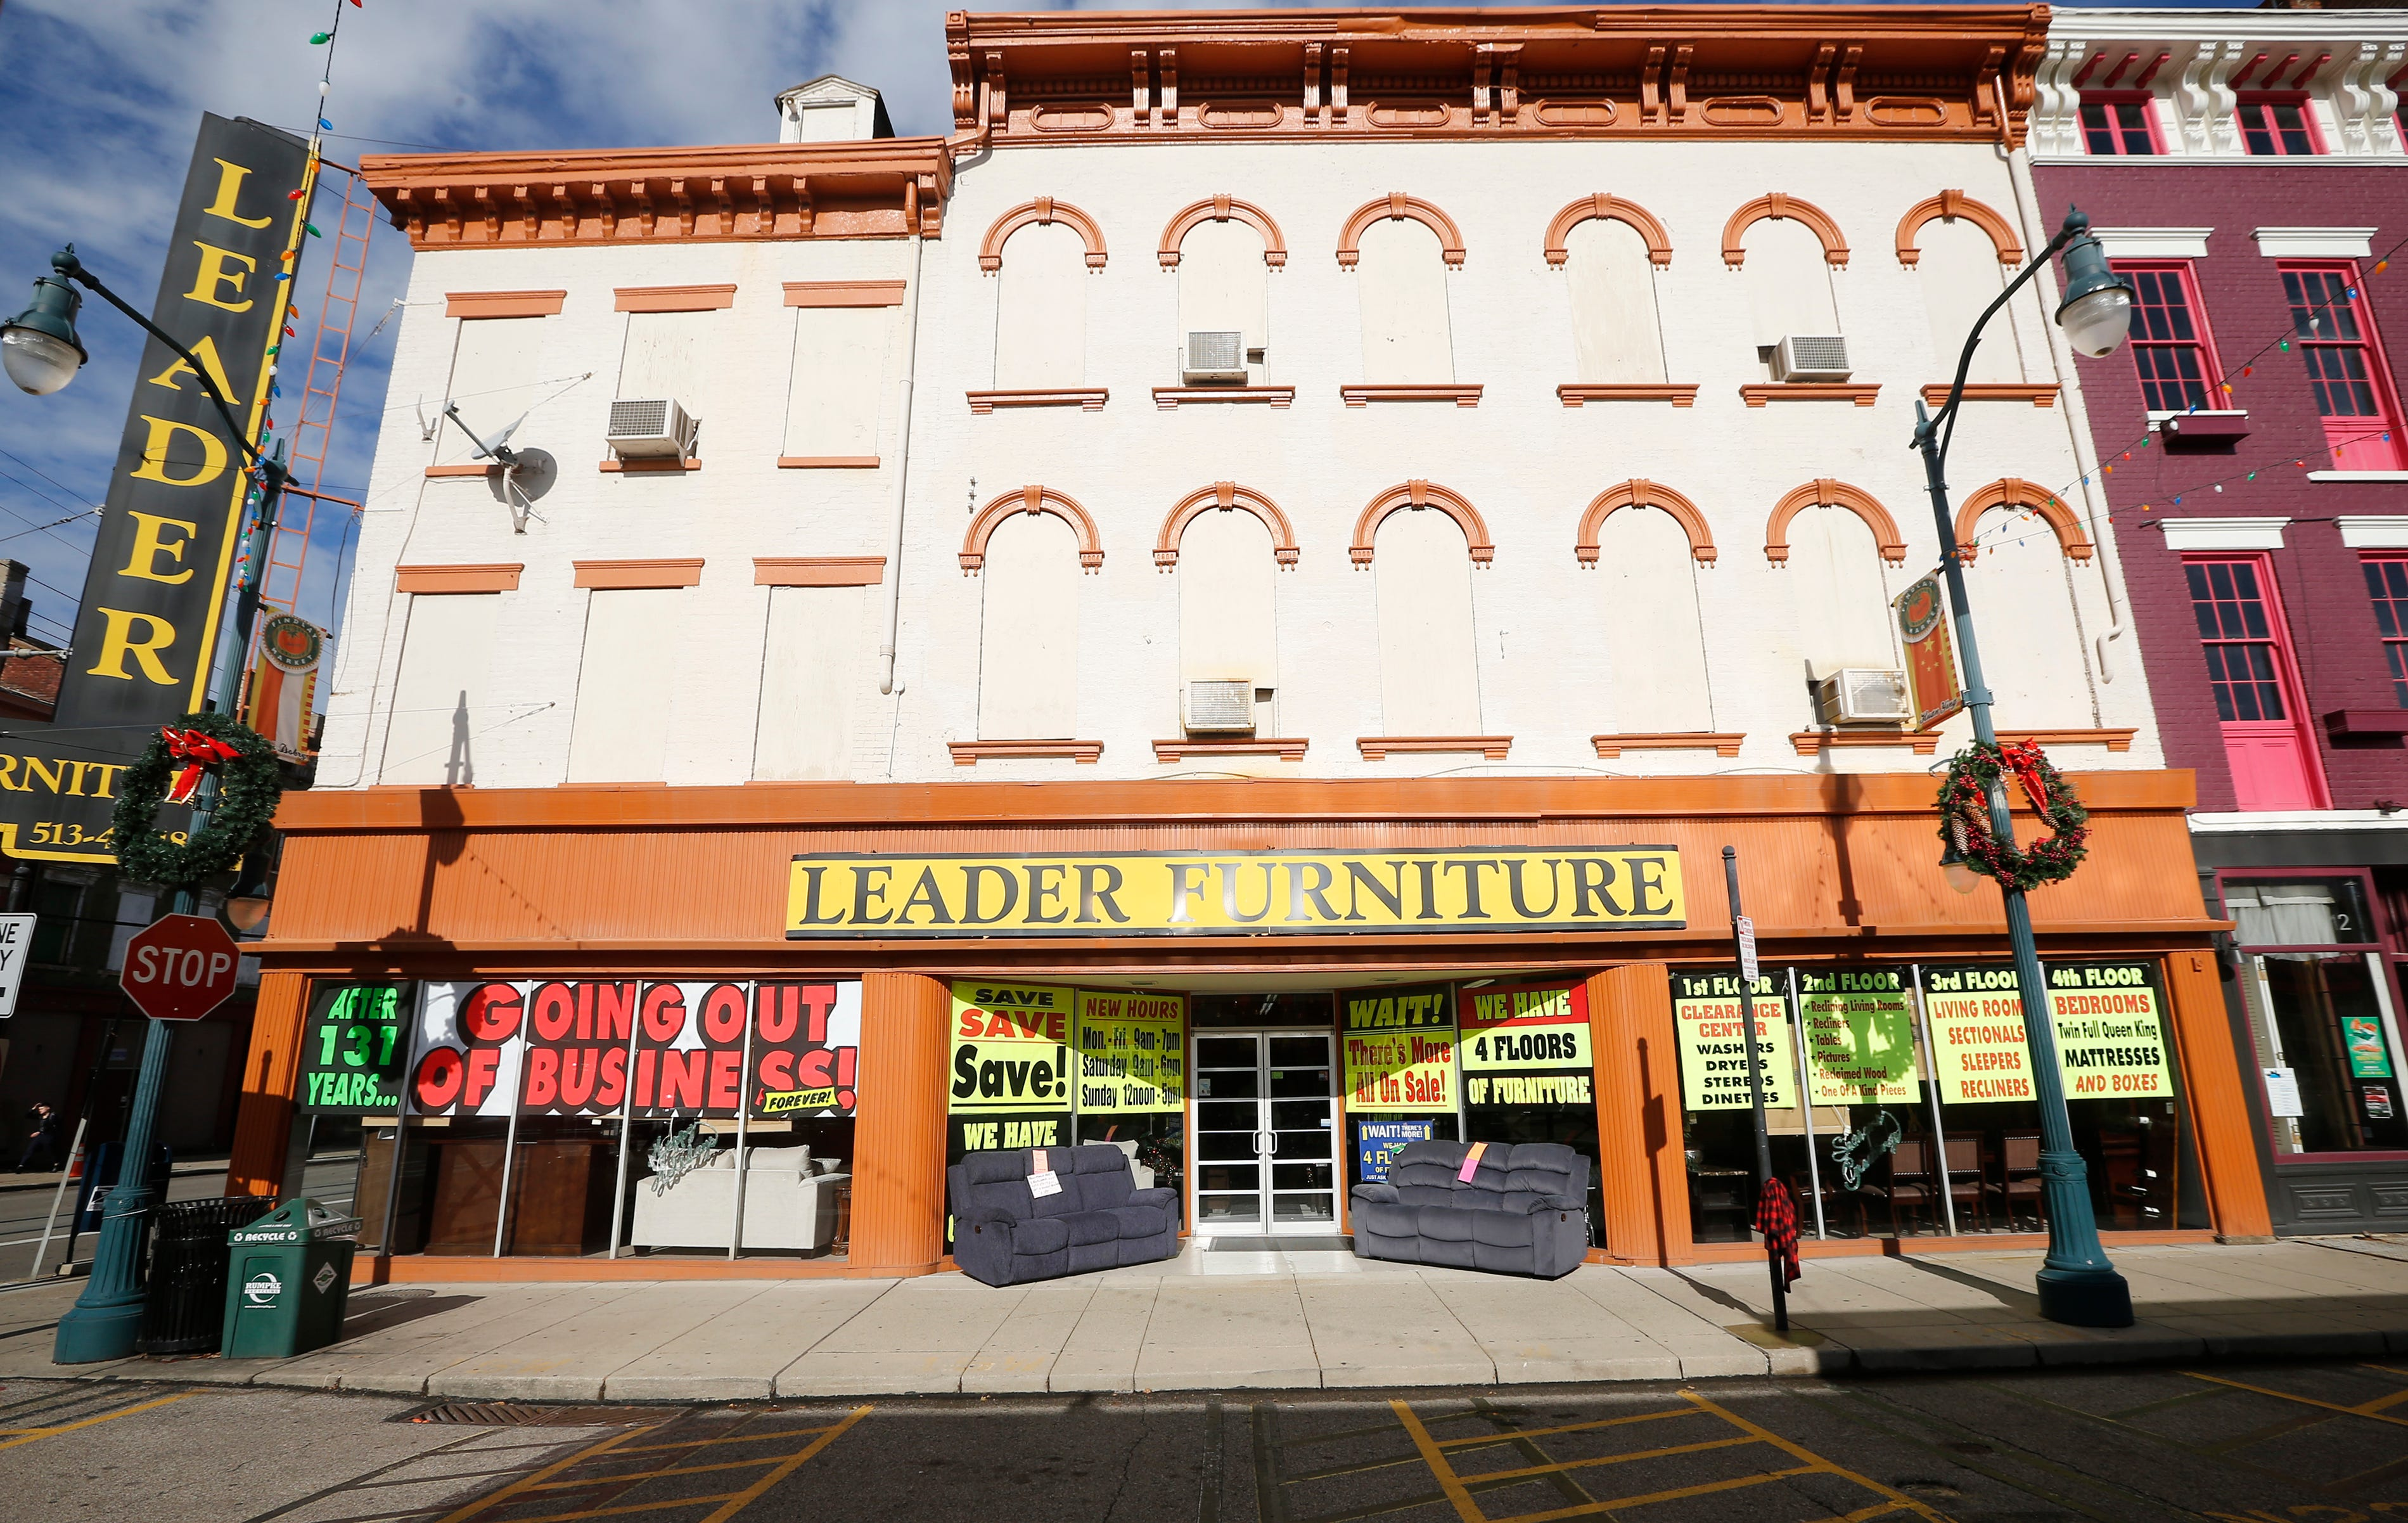 Longtime Retailer Leader Furniture Is Closing Its Store